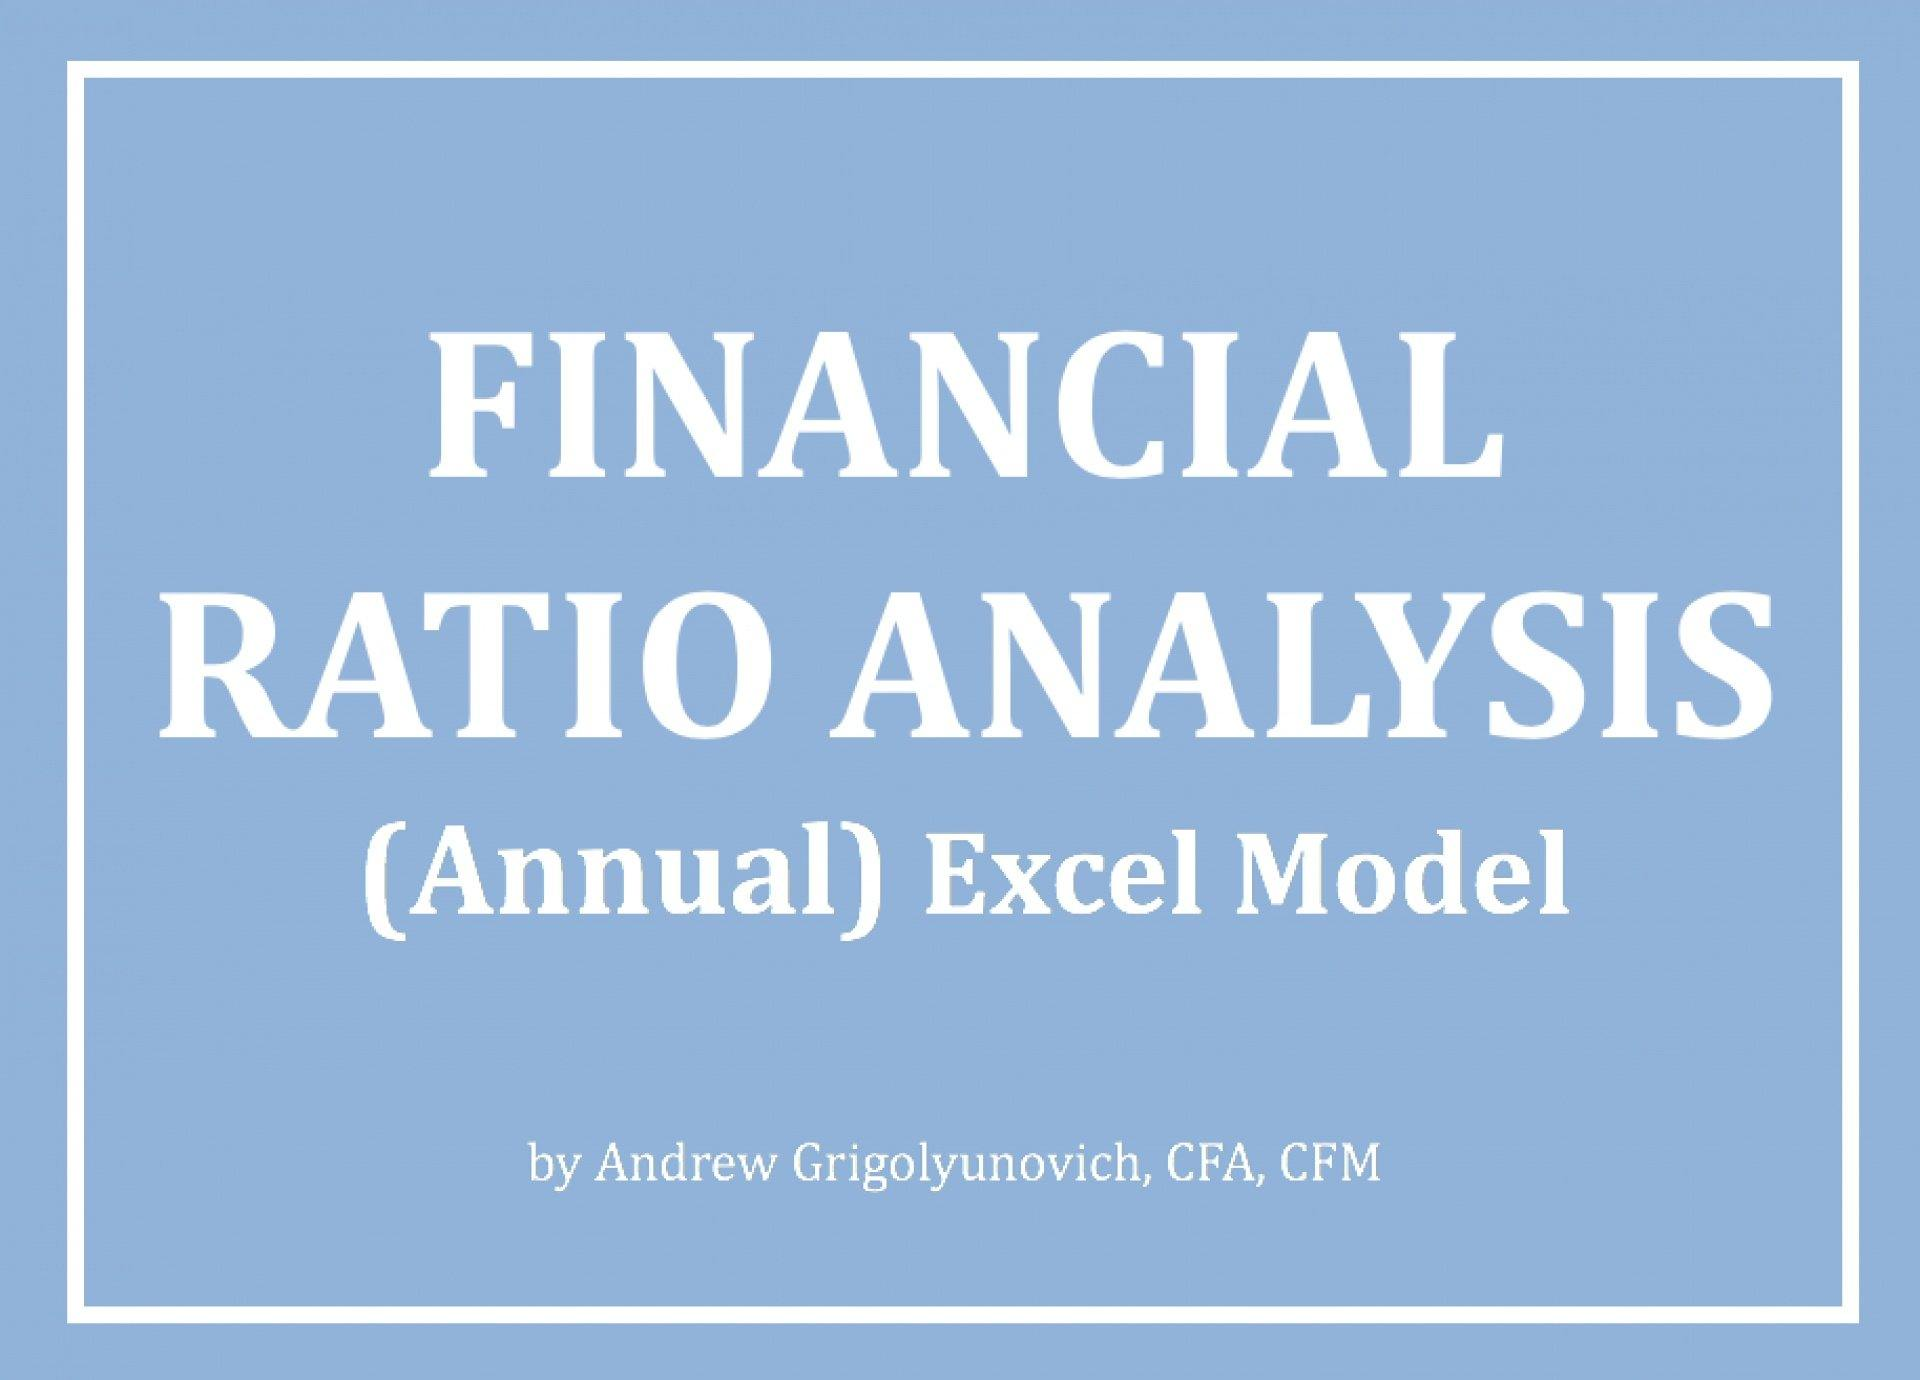 Financial Ratio Analysis (Annual) Excel Model - Templarket -  Business Templates Marketplace